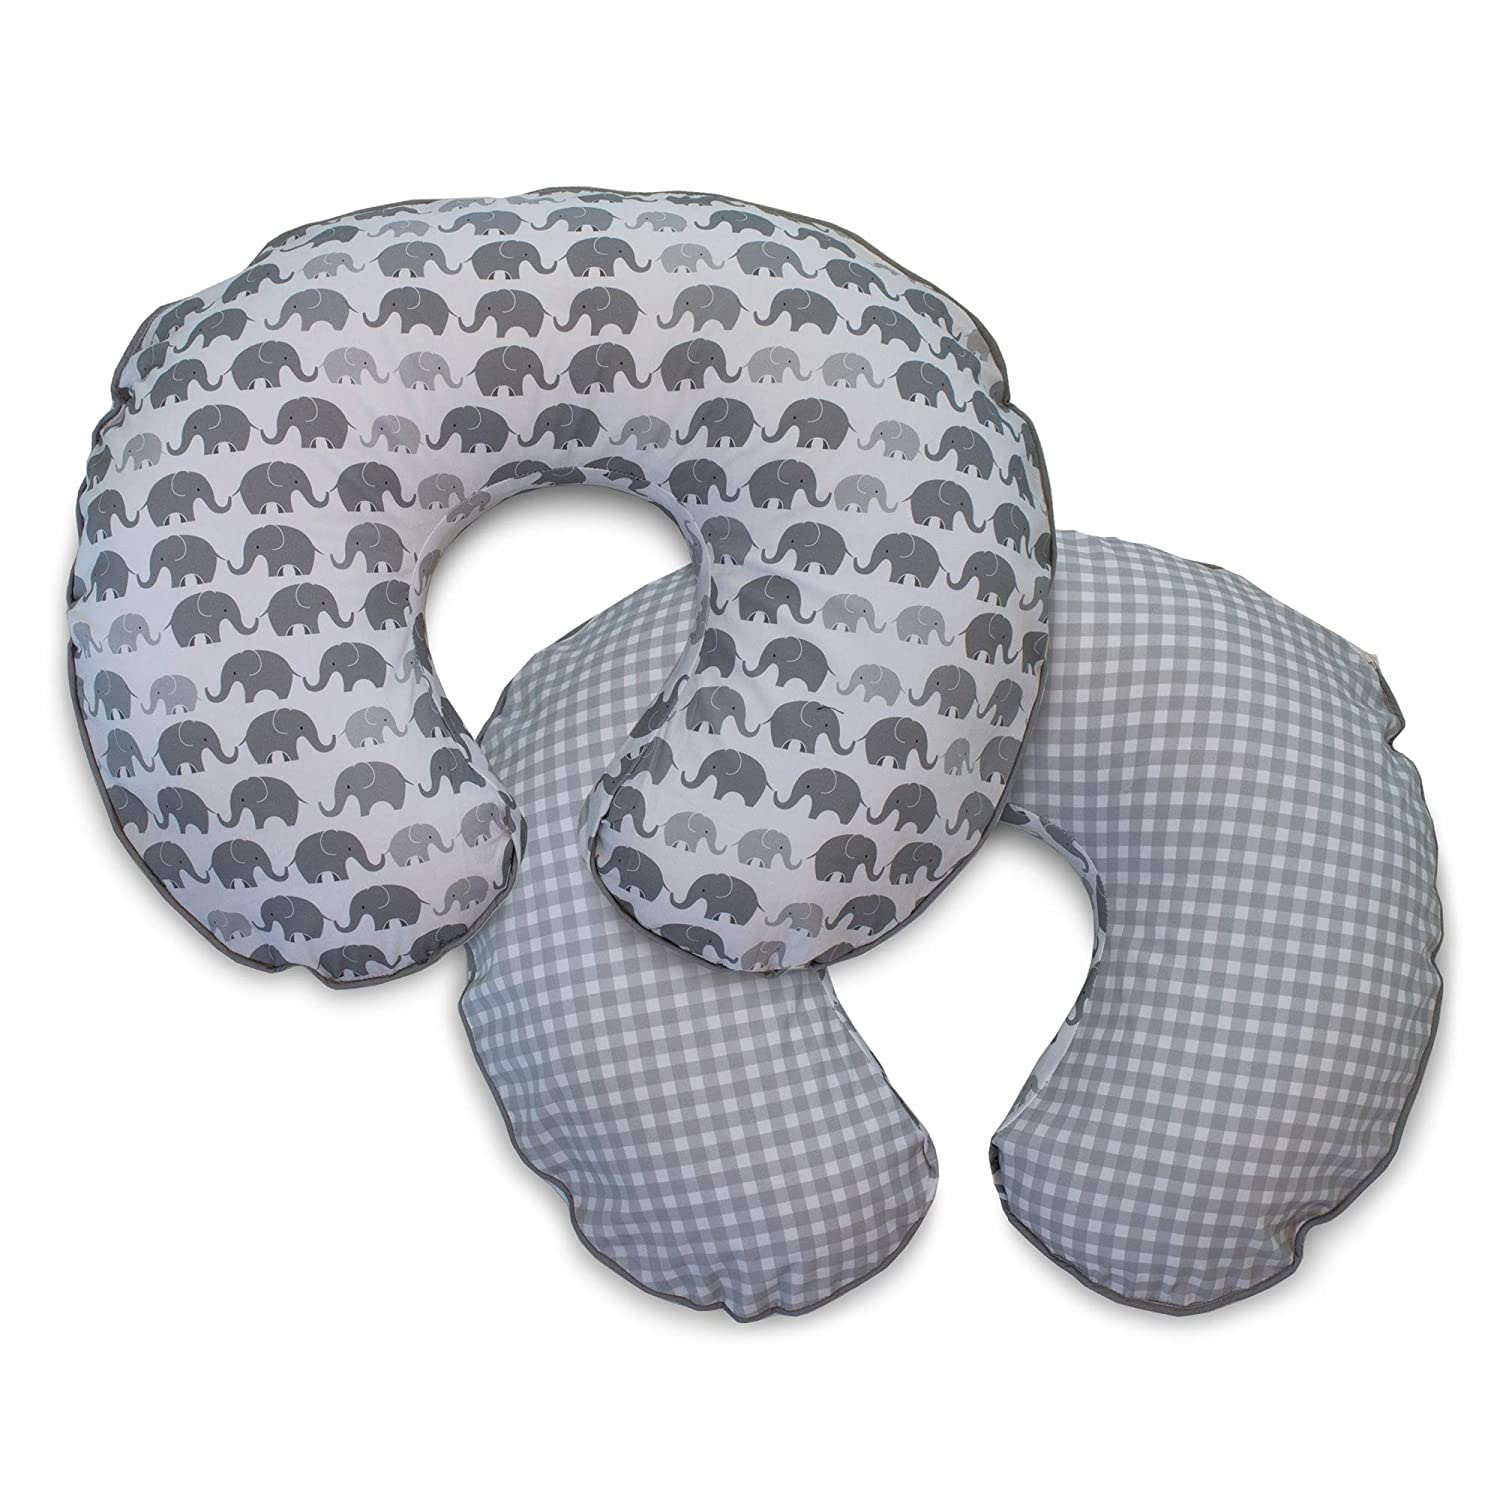 Boppy Microfiber Nursing Pillow Slipcover, Gray Elephants Plaid The Boppy Company 3200579K 6PK